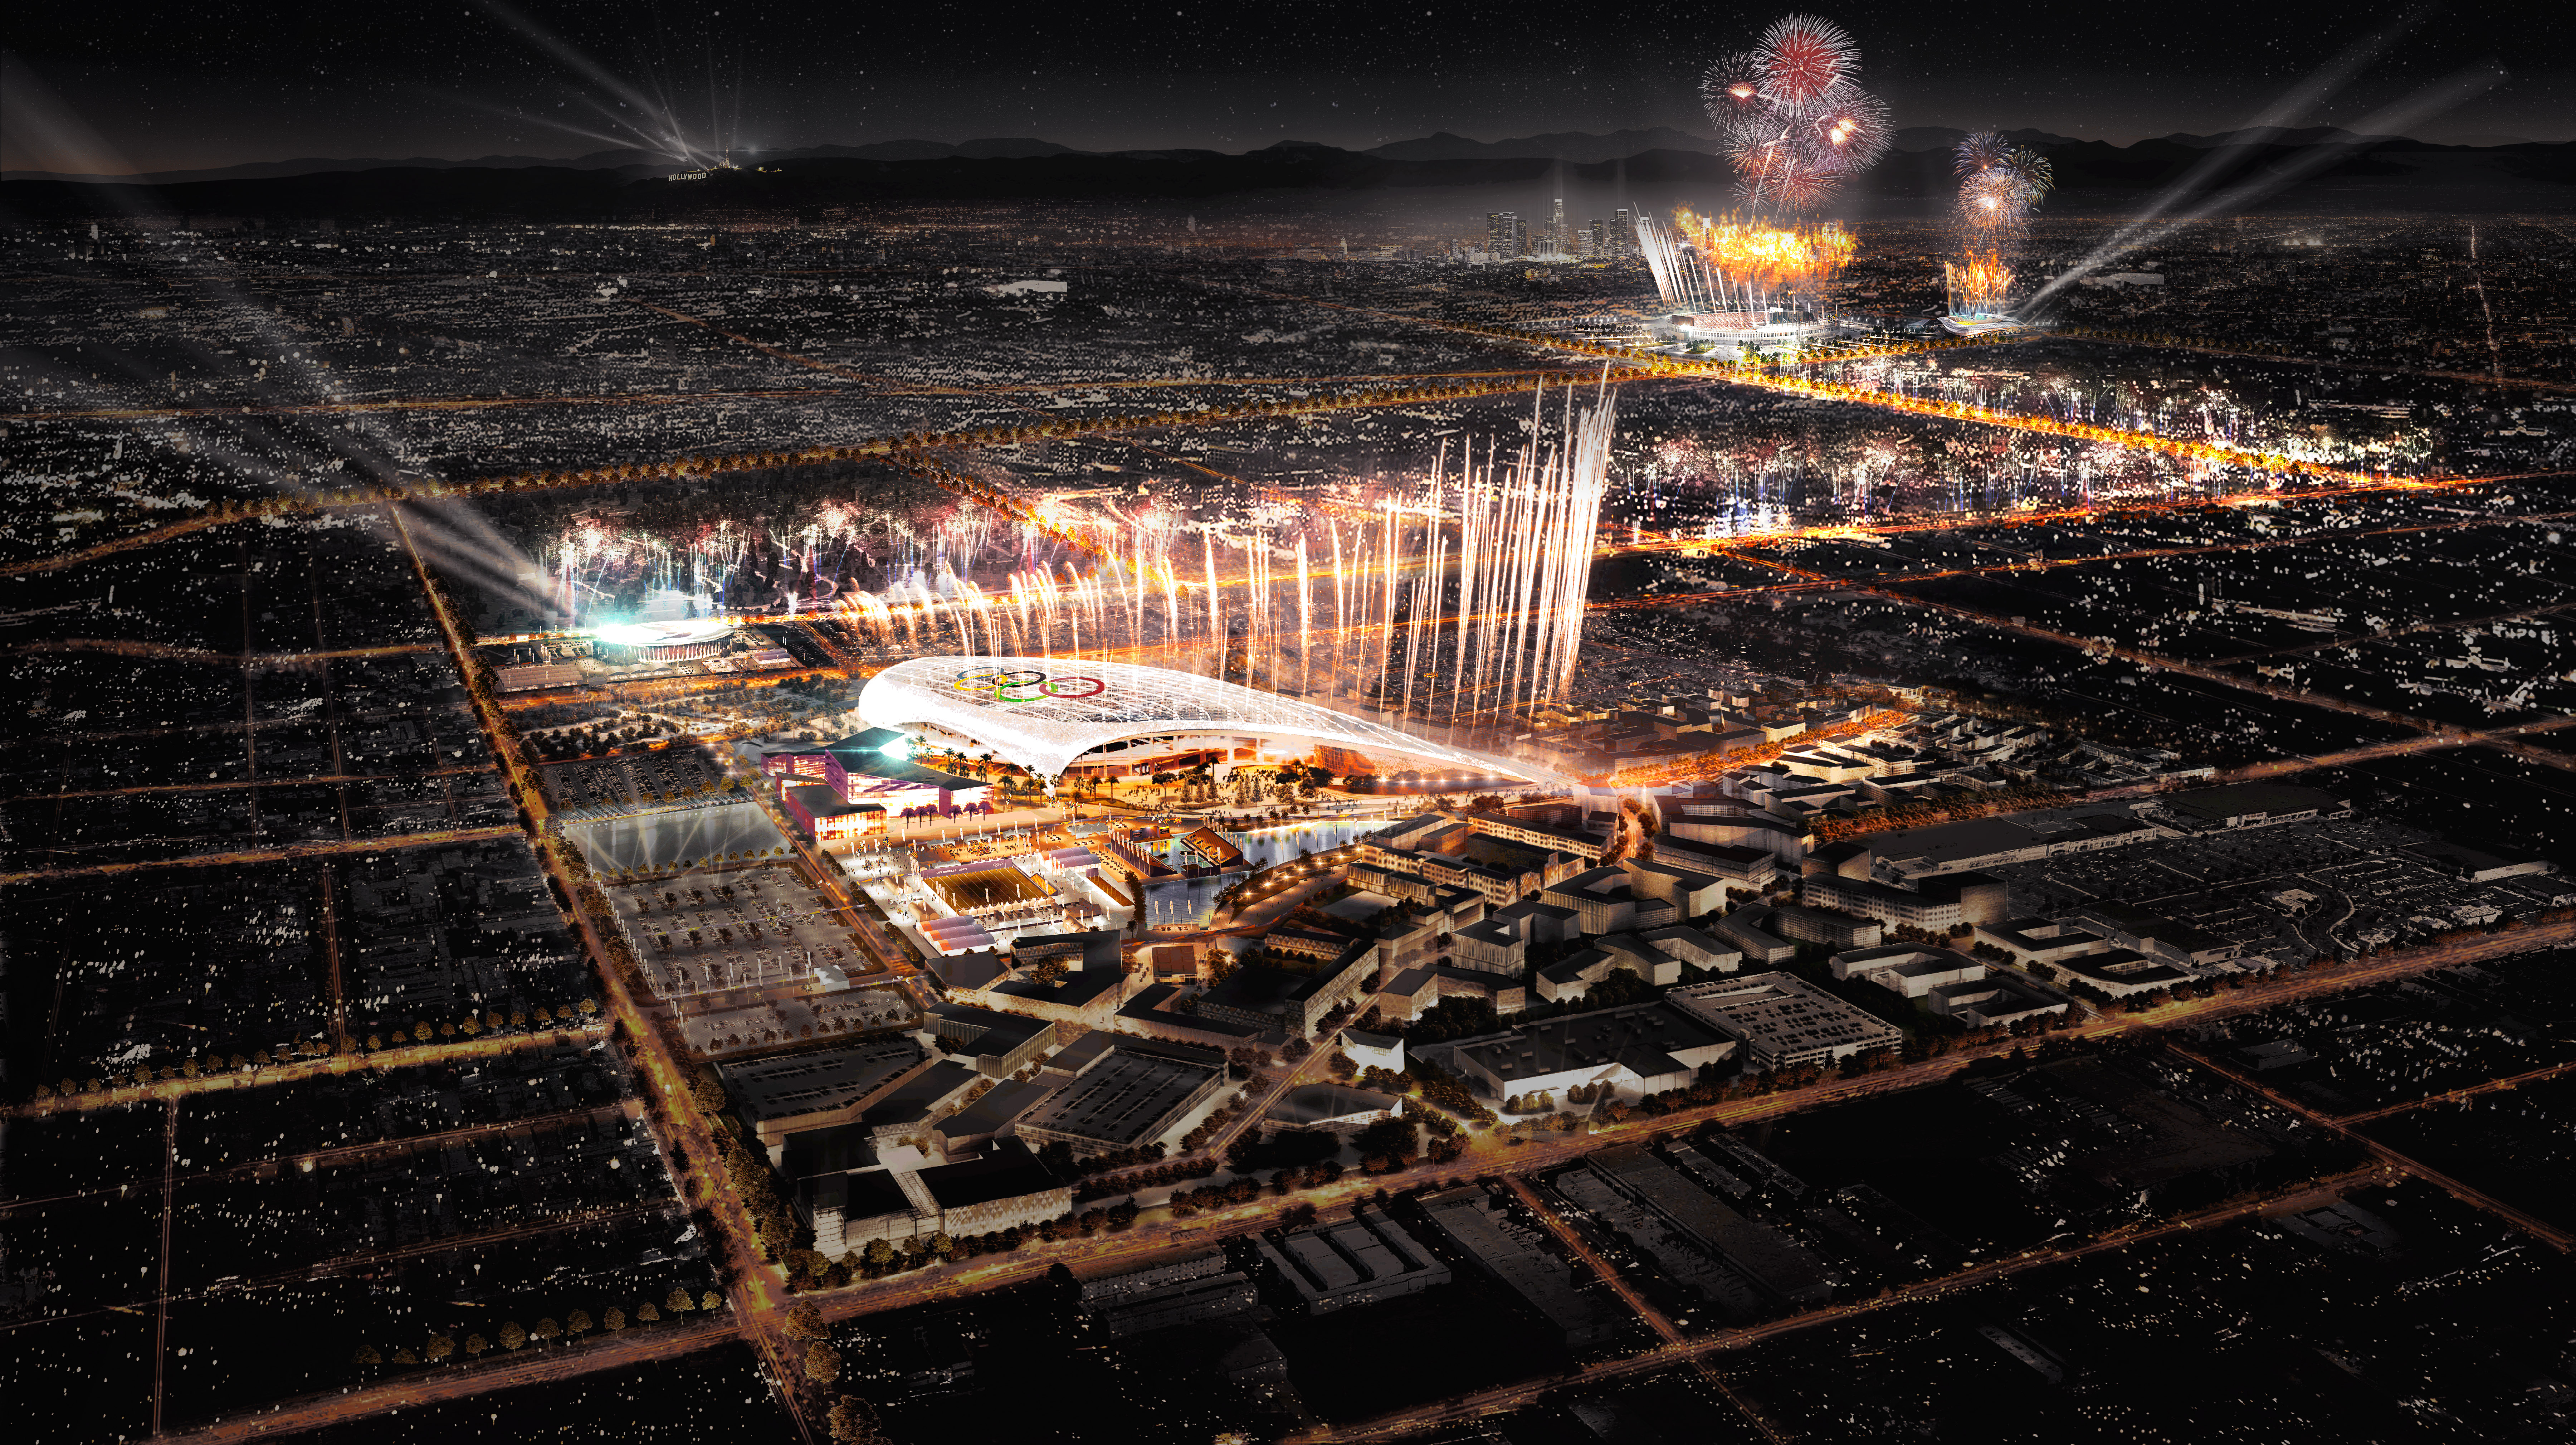 LA 2028 Olympics: Mapping the sites of the Los Angeles